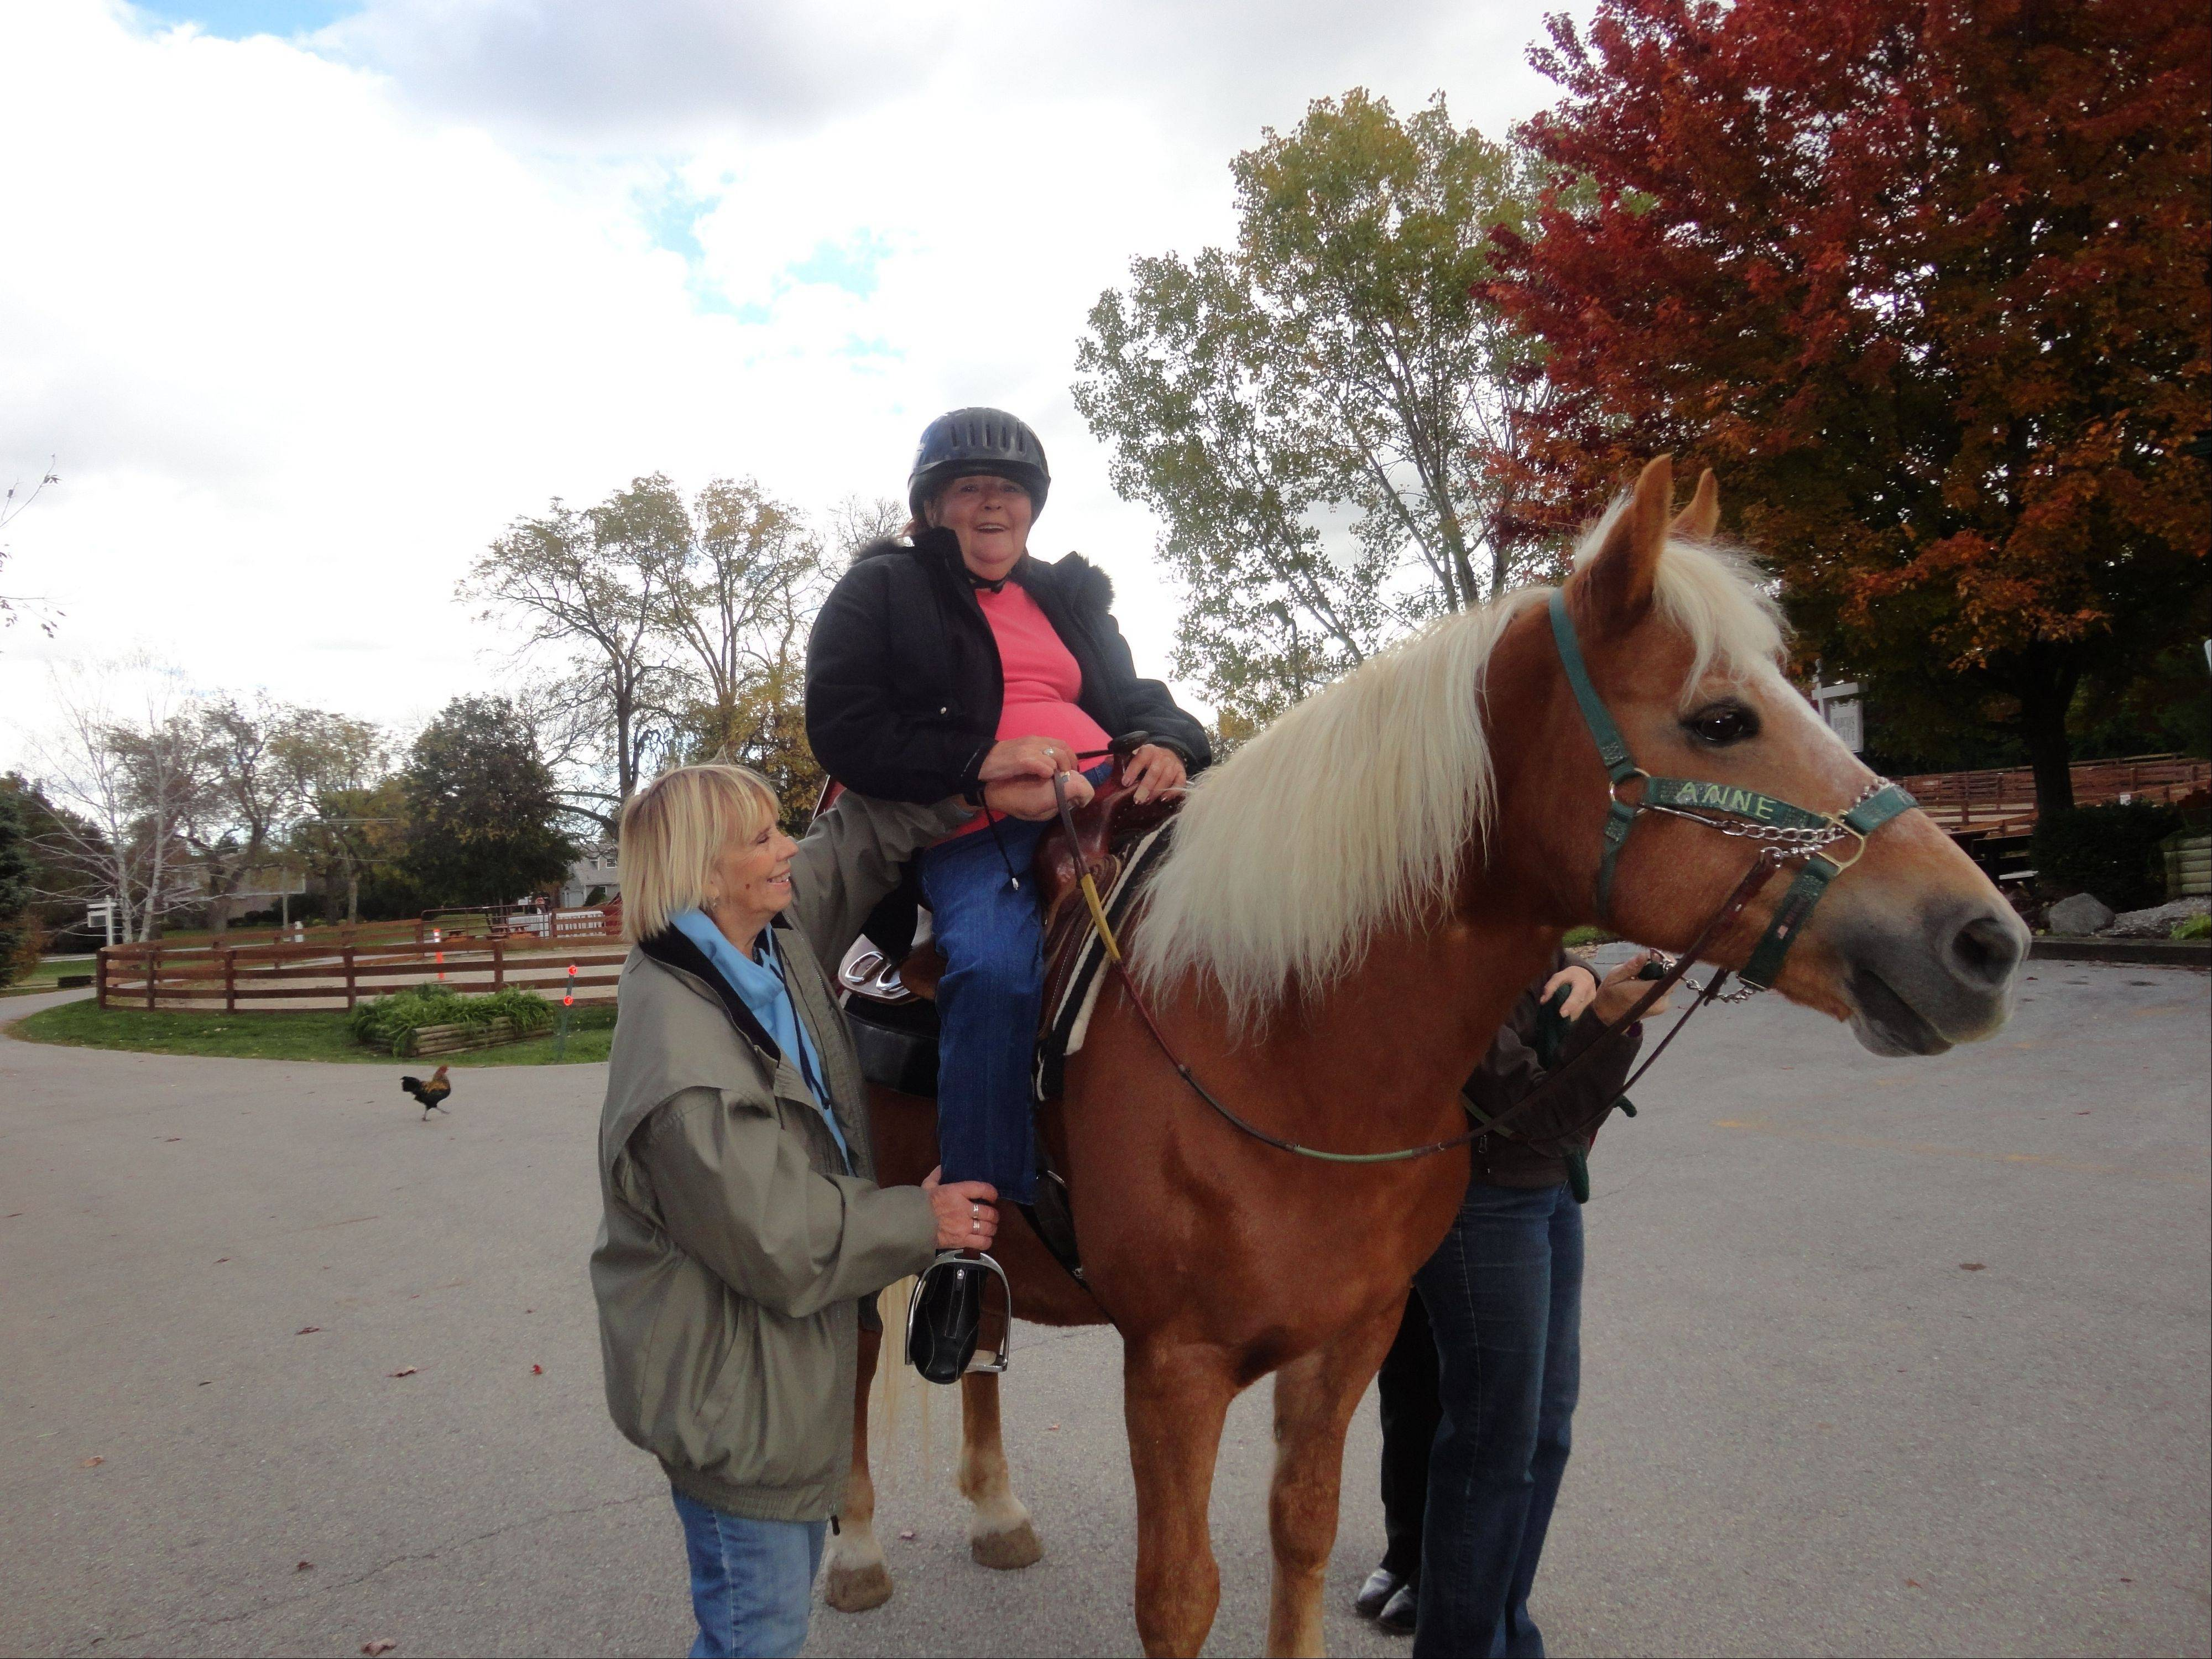 Garrigus, a resident of Victory Centre of River Woods, takes advantage of opportunities to go horseback riding at the Hanson Center Riding Arena in Burr Ridge.